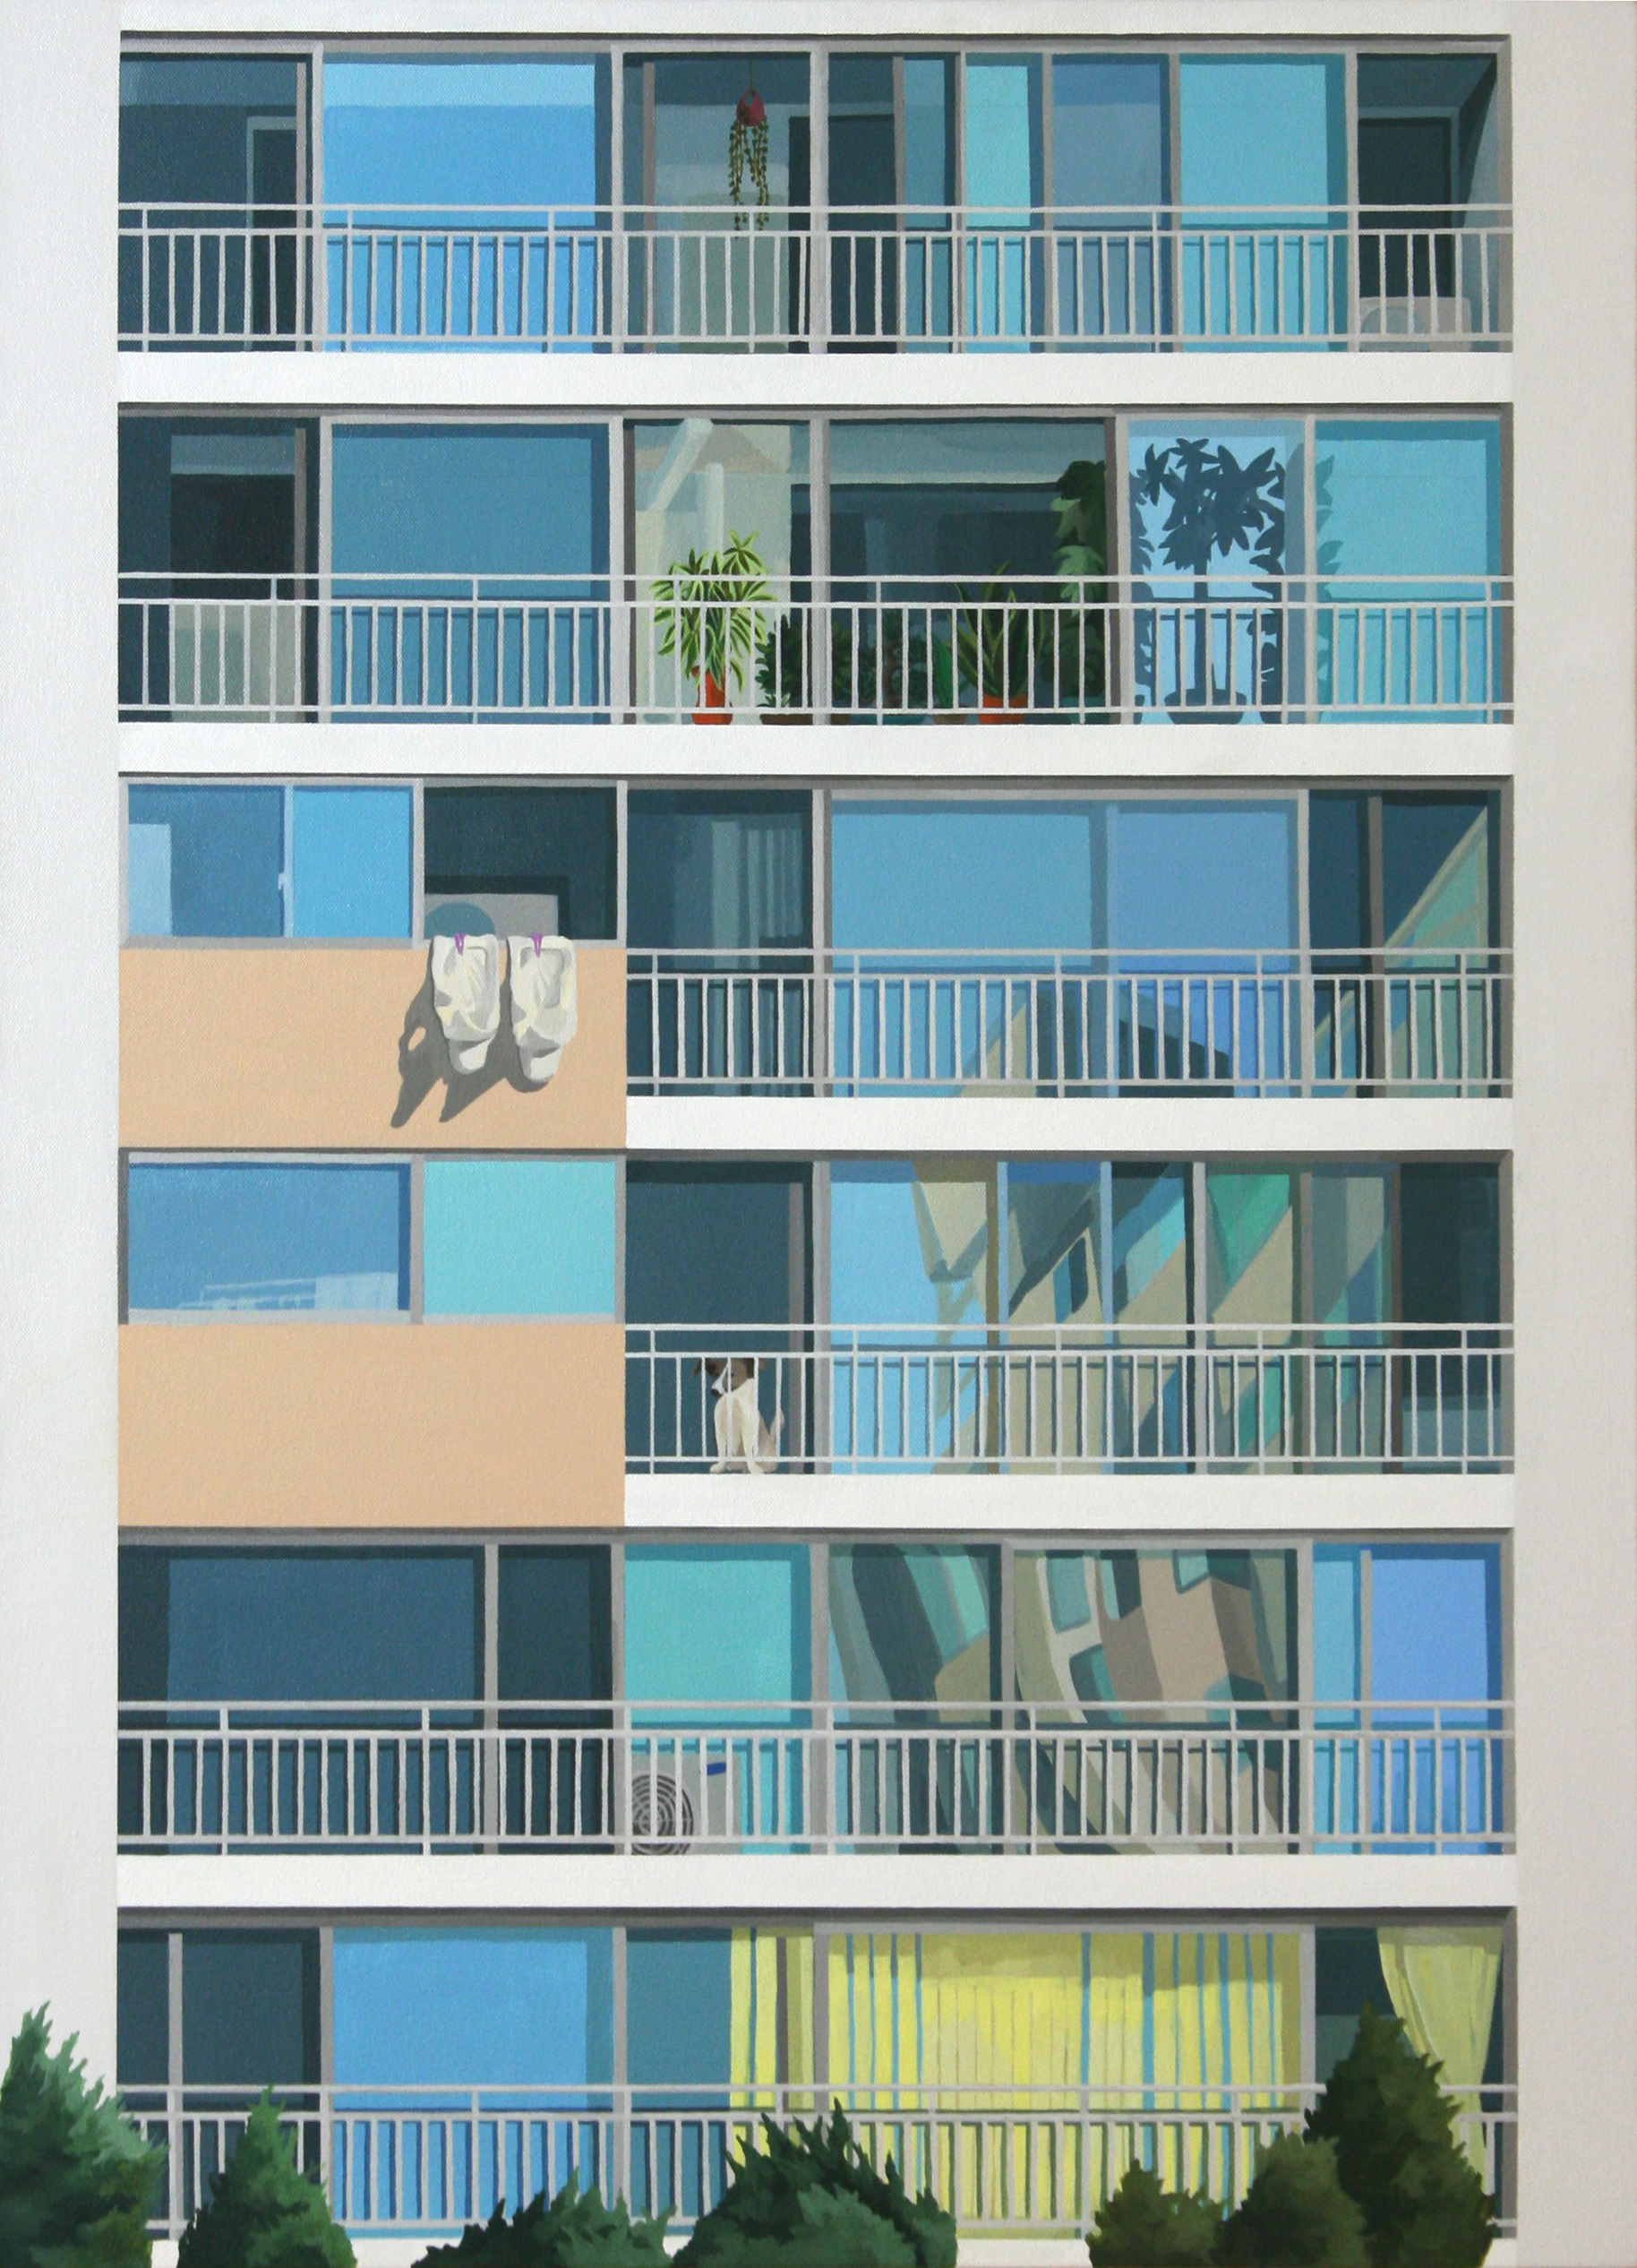 space apartment, 2007, acrylic on canvas, 90.9x72